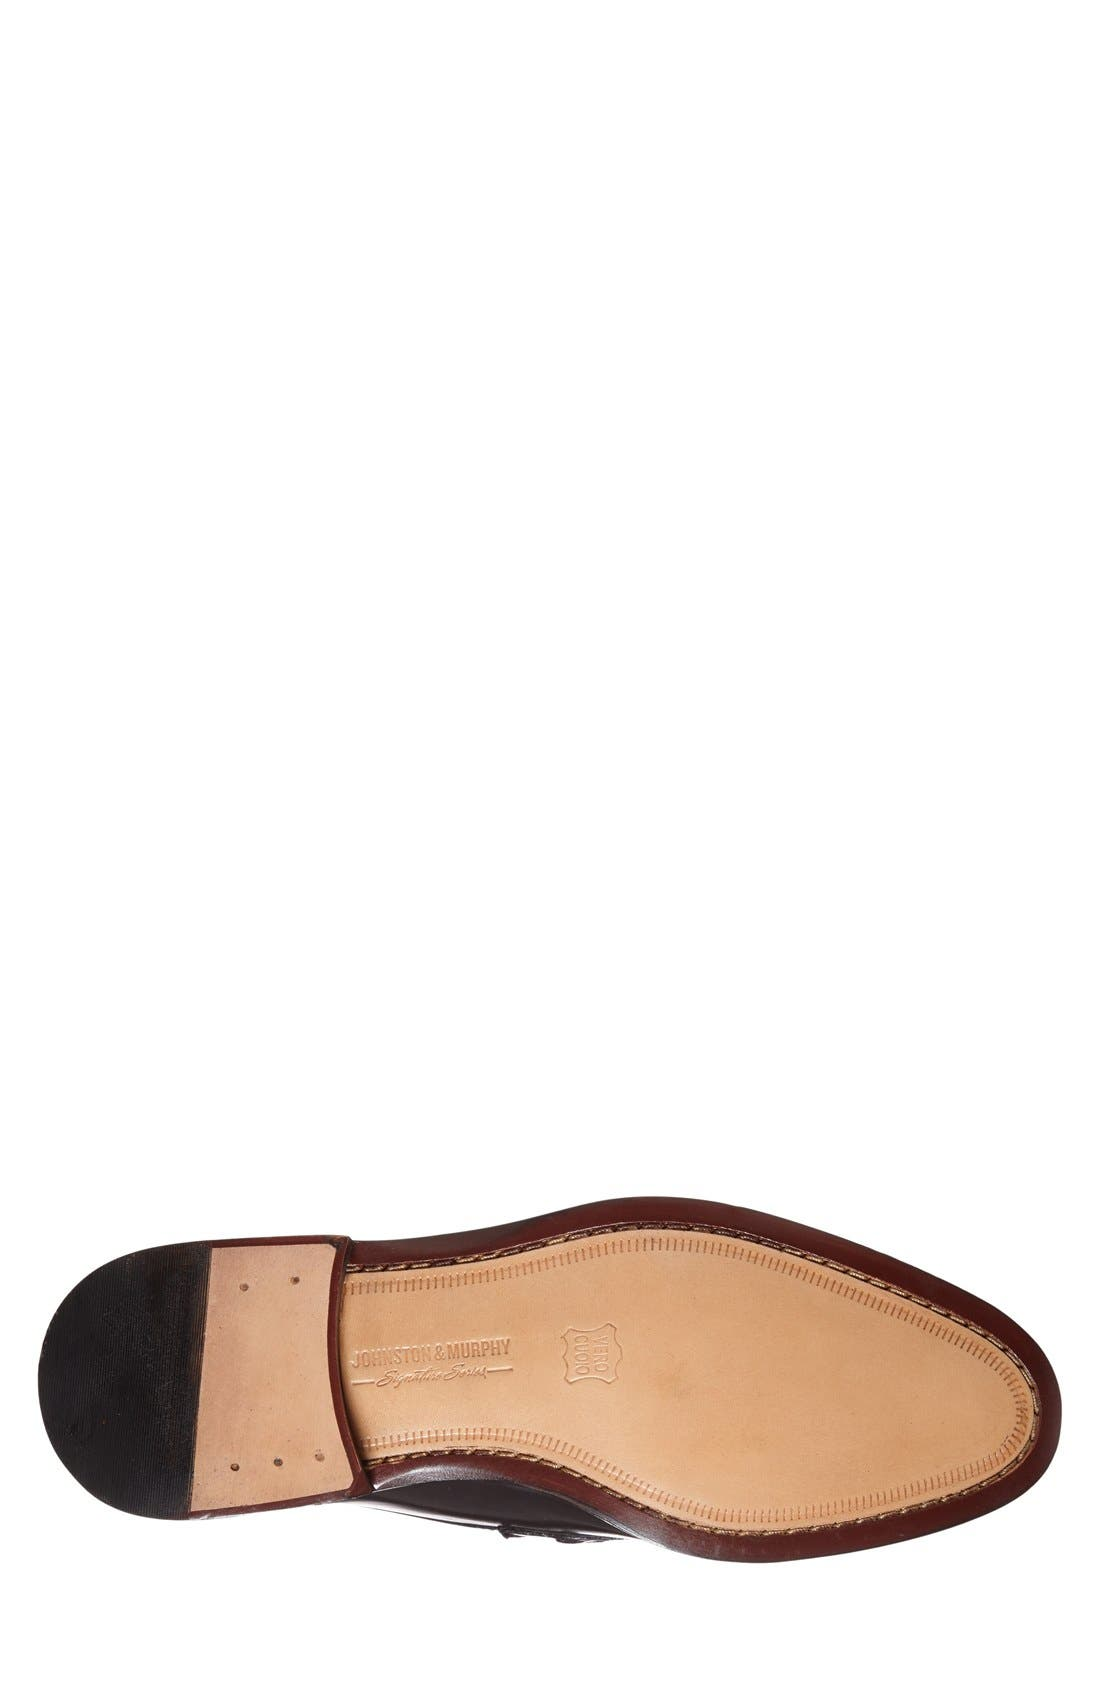 'Stratton' Bit Loafer,                             Alternate thumbnail 4, color,                             Black